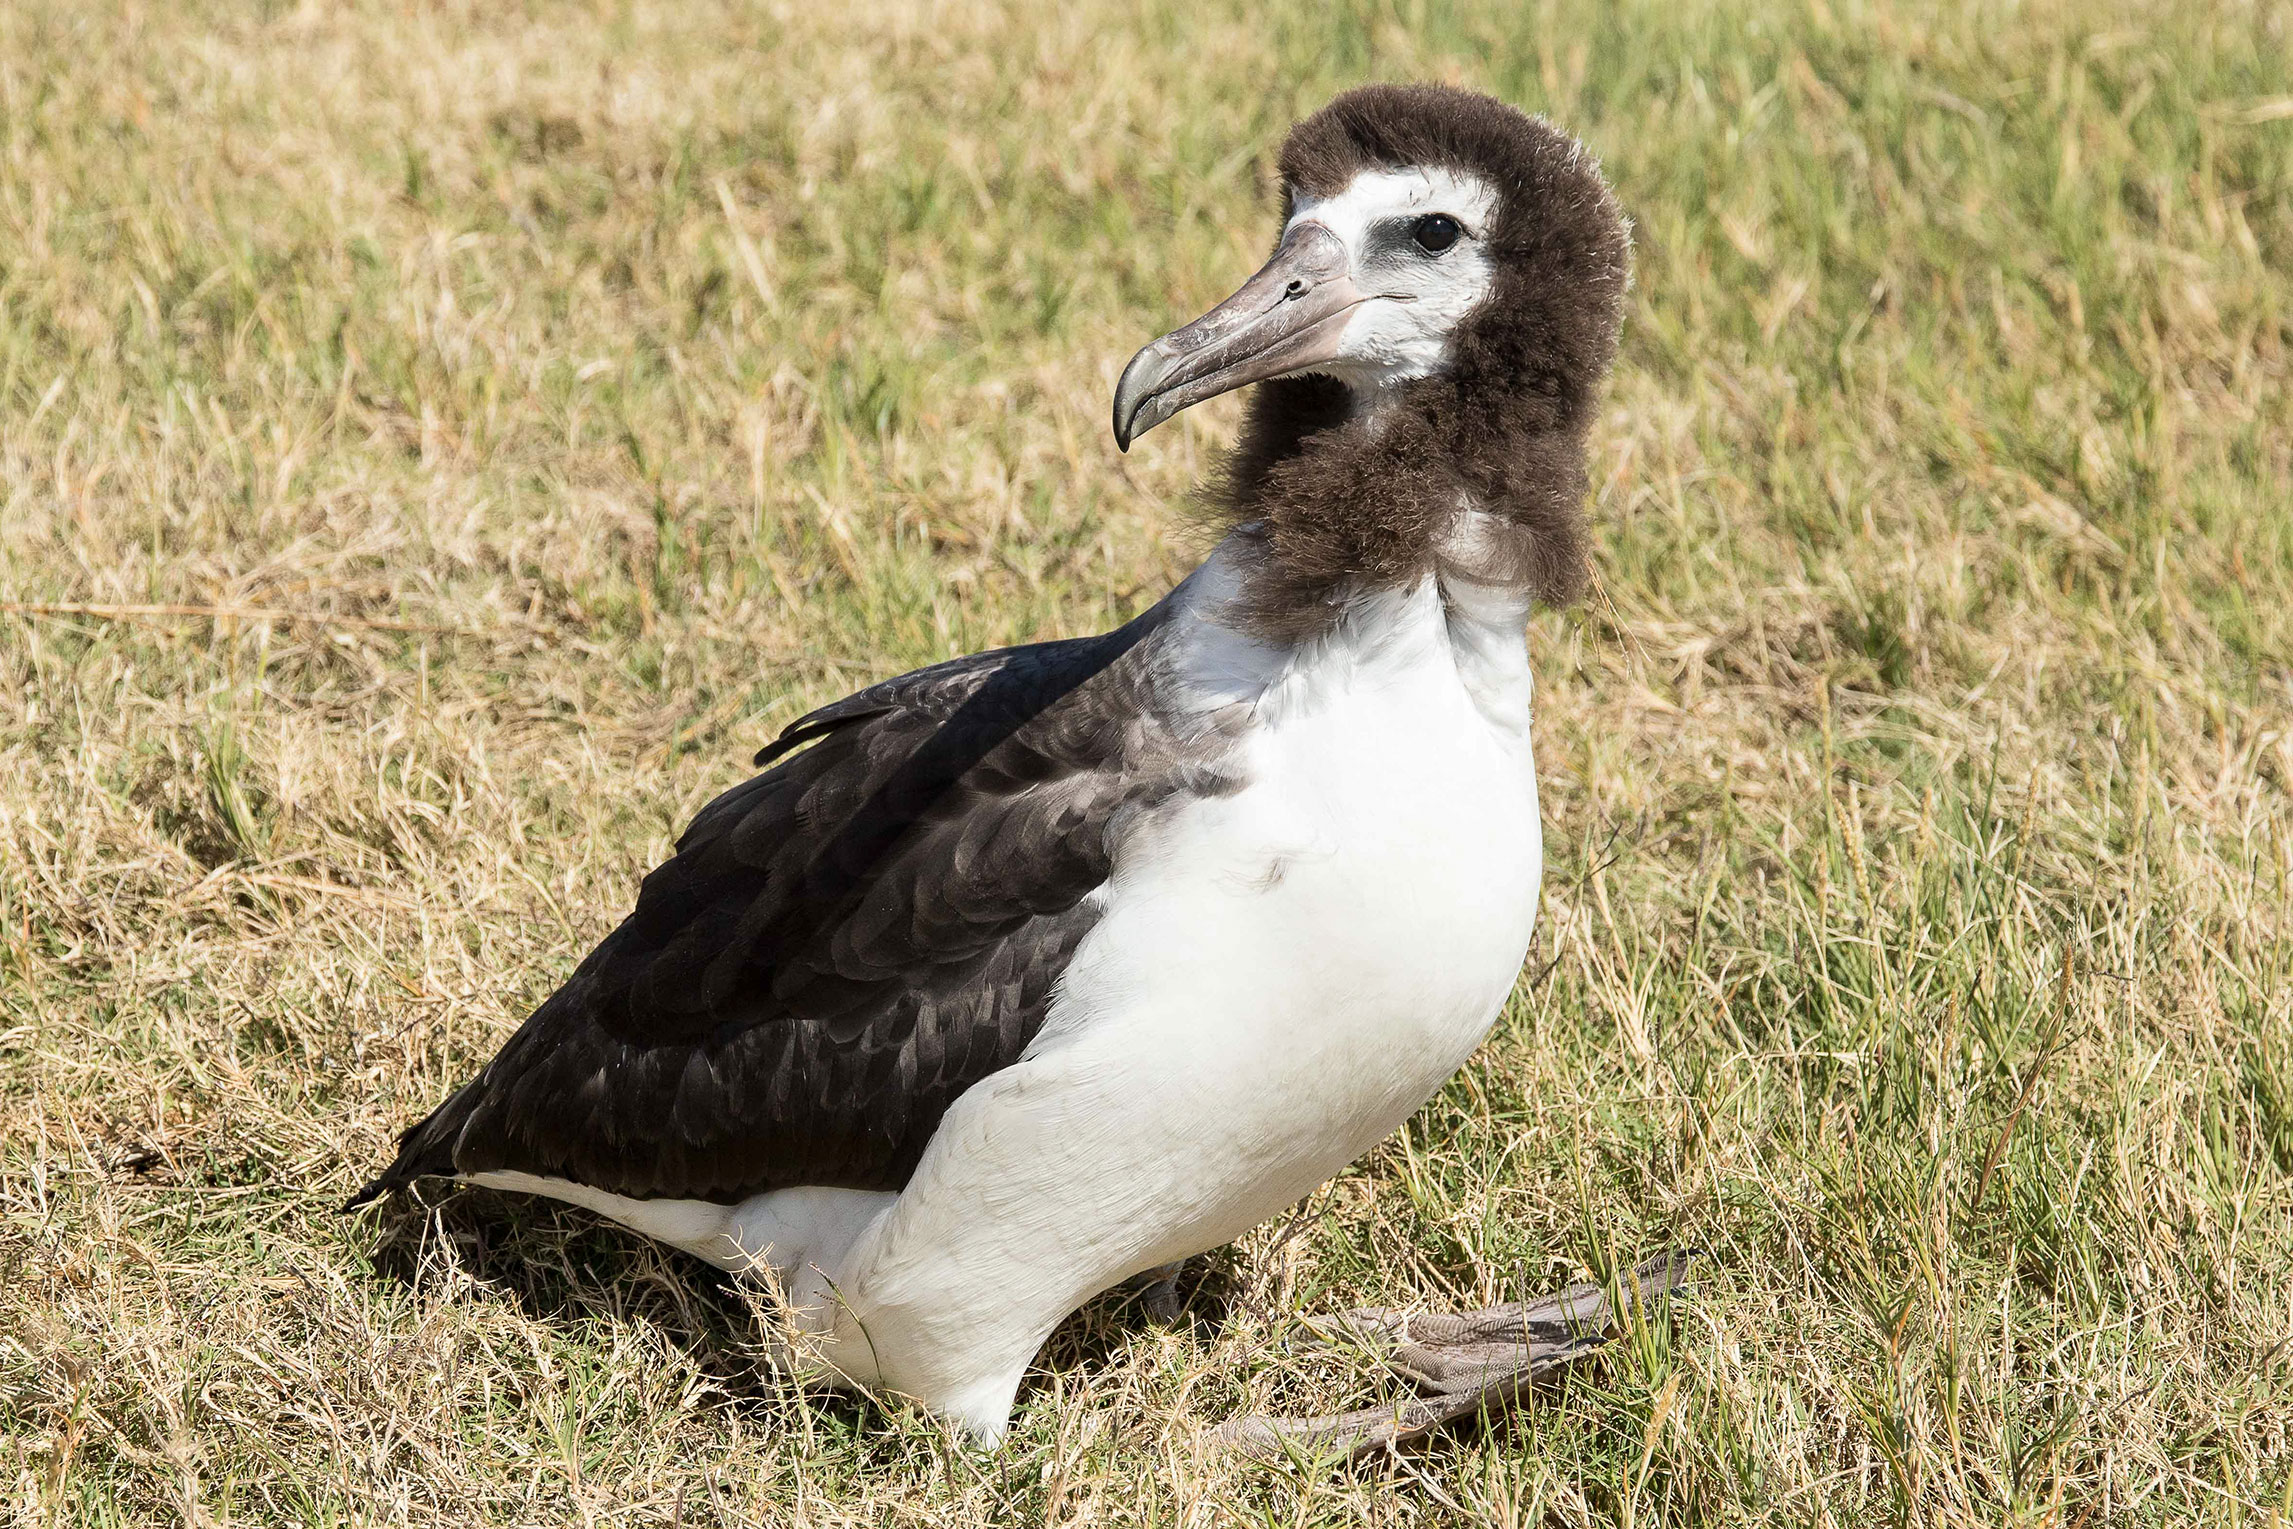 """Laysan Albatross give """"awkward teenage years"""" a whole new meaning. Here, Nine parades her latest hairdo, created by inconsistent molting of her gray downy feathers. Eric VanderWerf"""